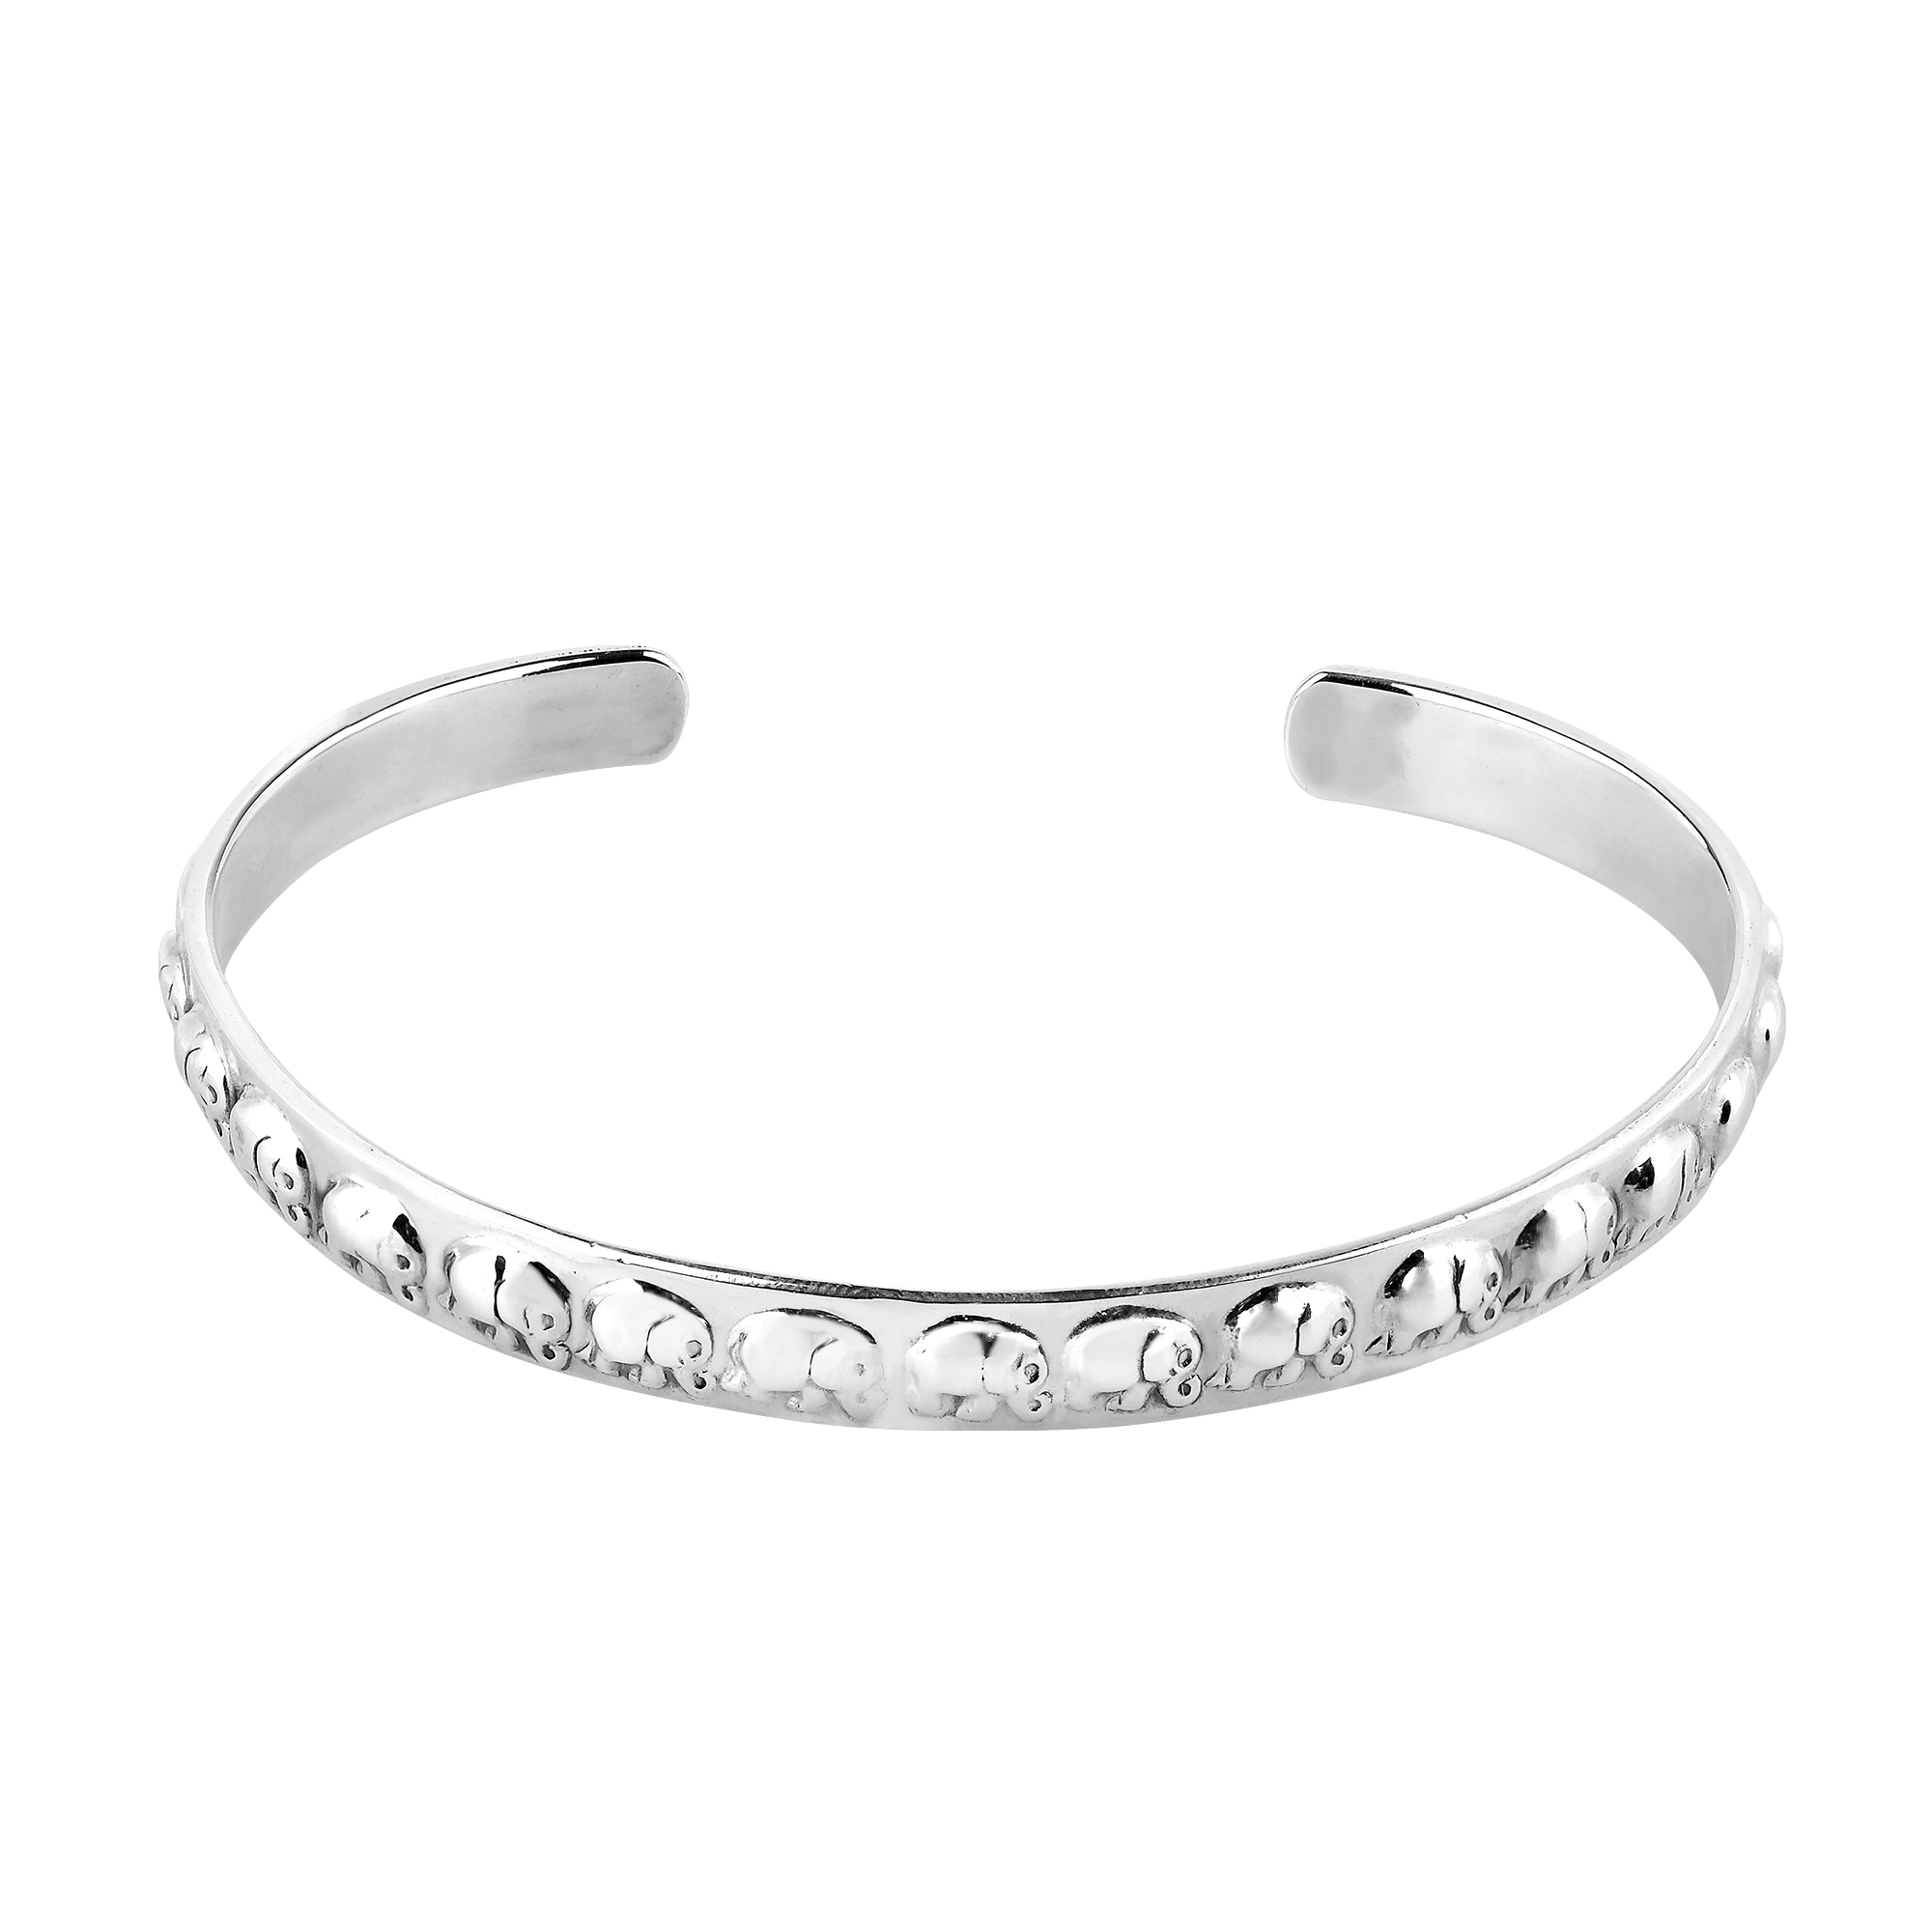 bracelet weight silver bangles slip on p bangle length bracelets width sterling grams solid plain polished